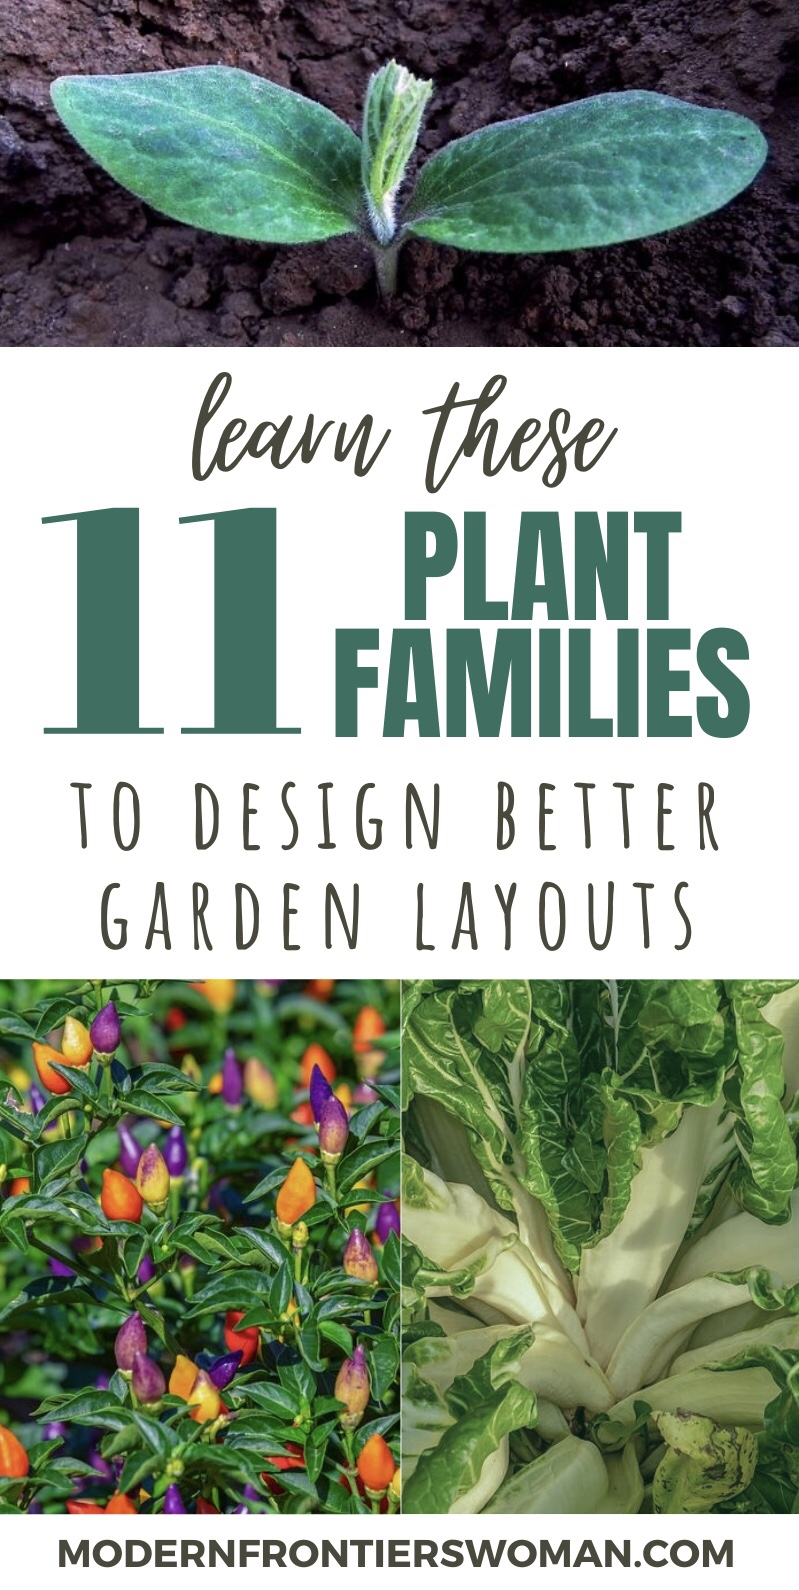 Learn These 11 Plant Families to Design Better Garden Layouts